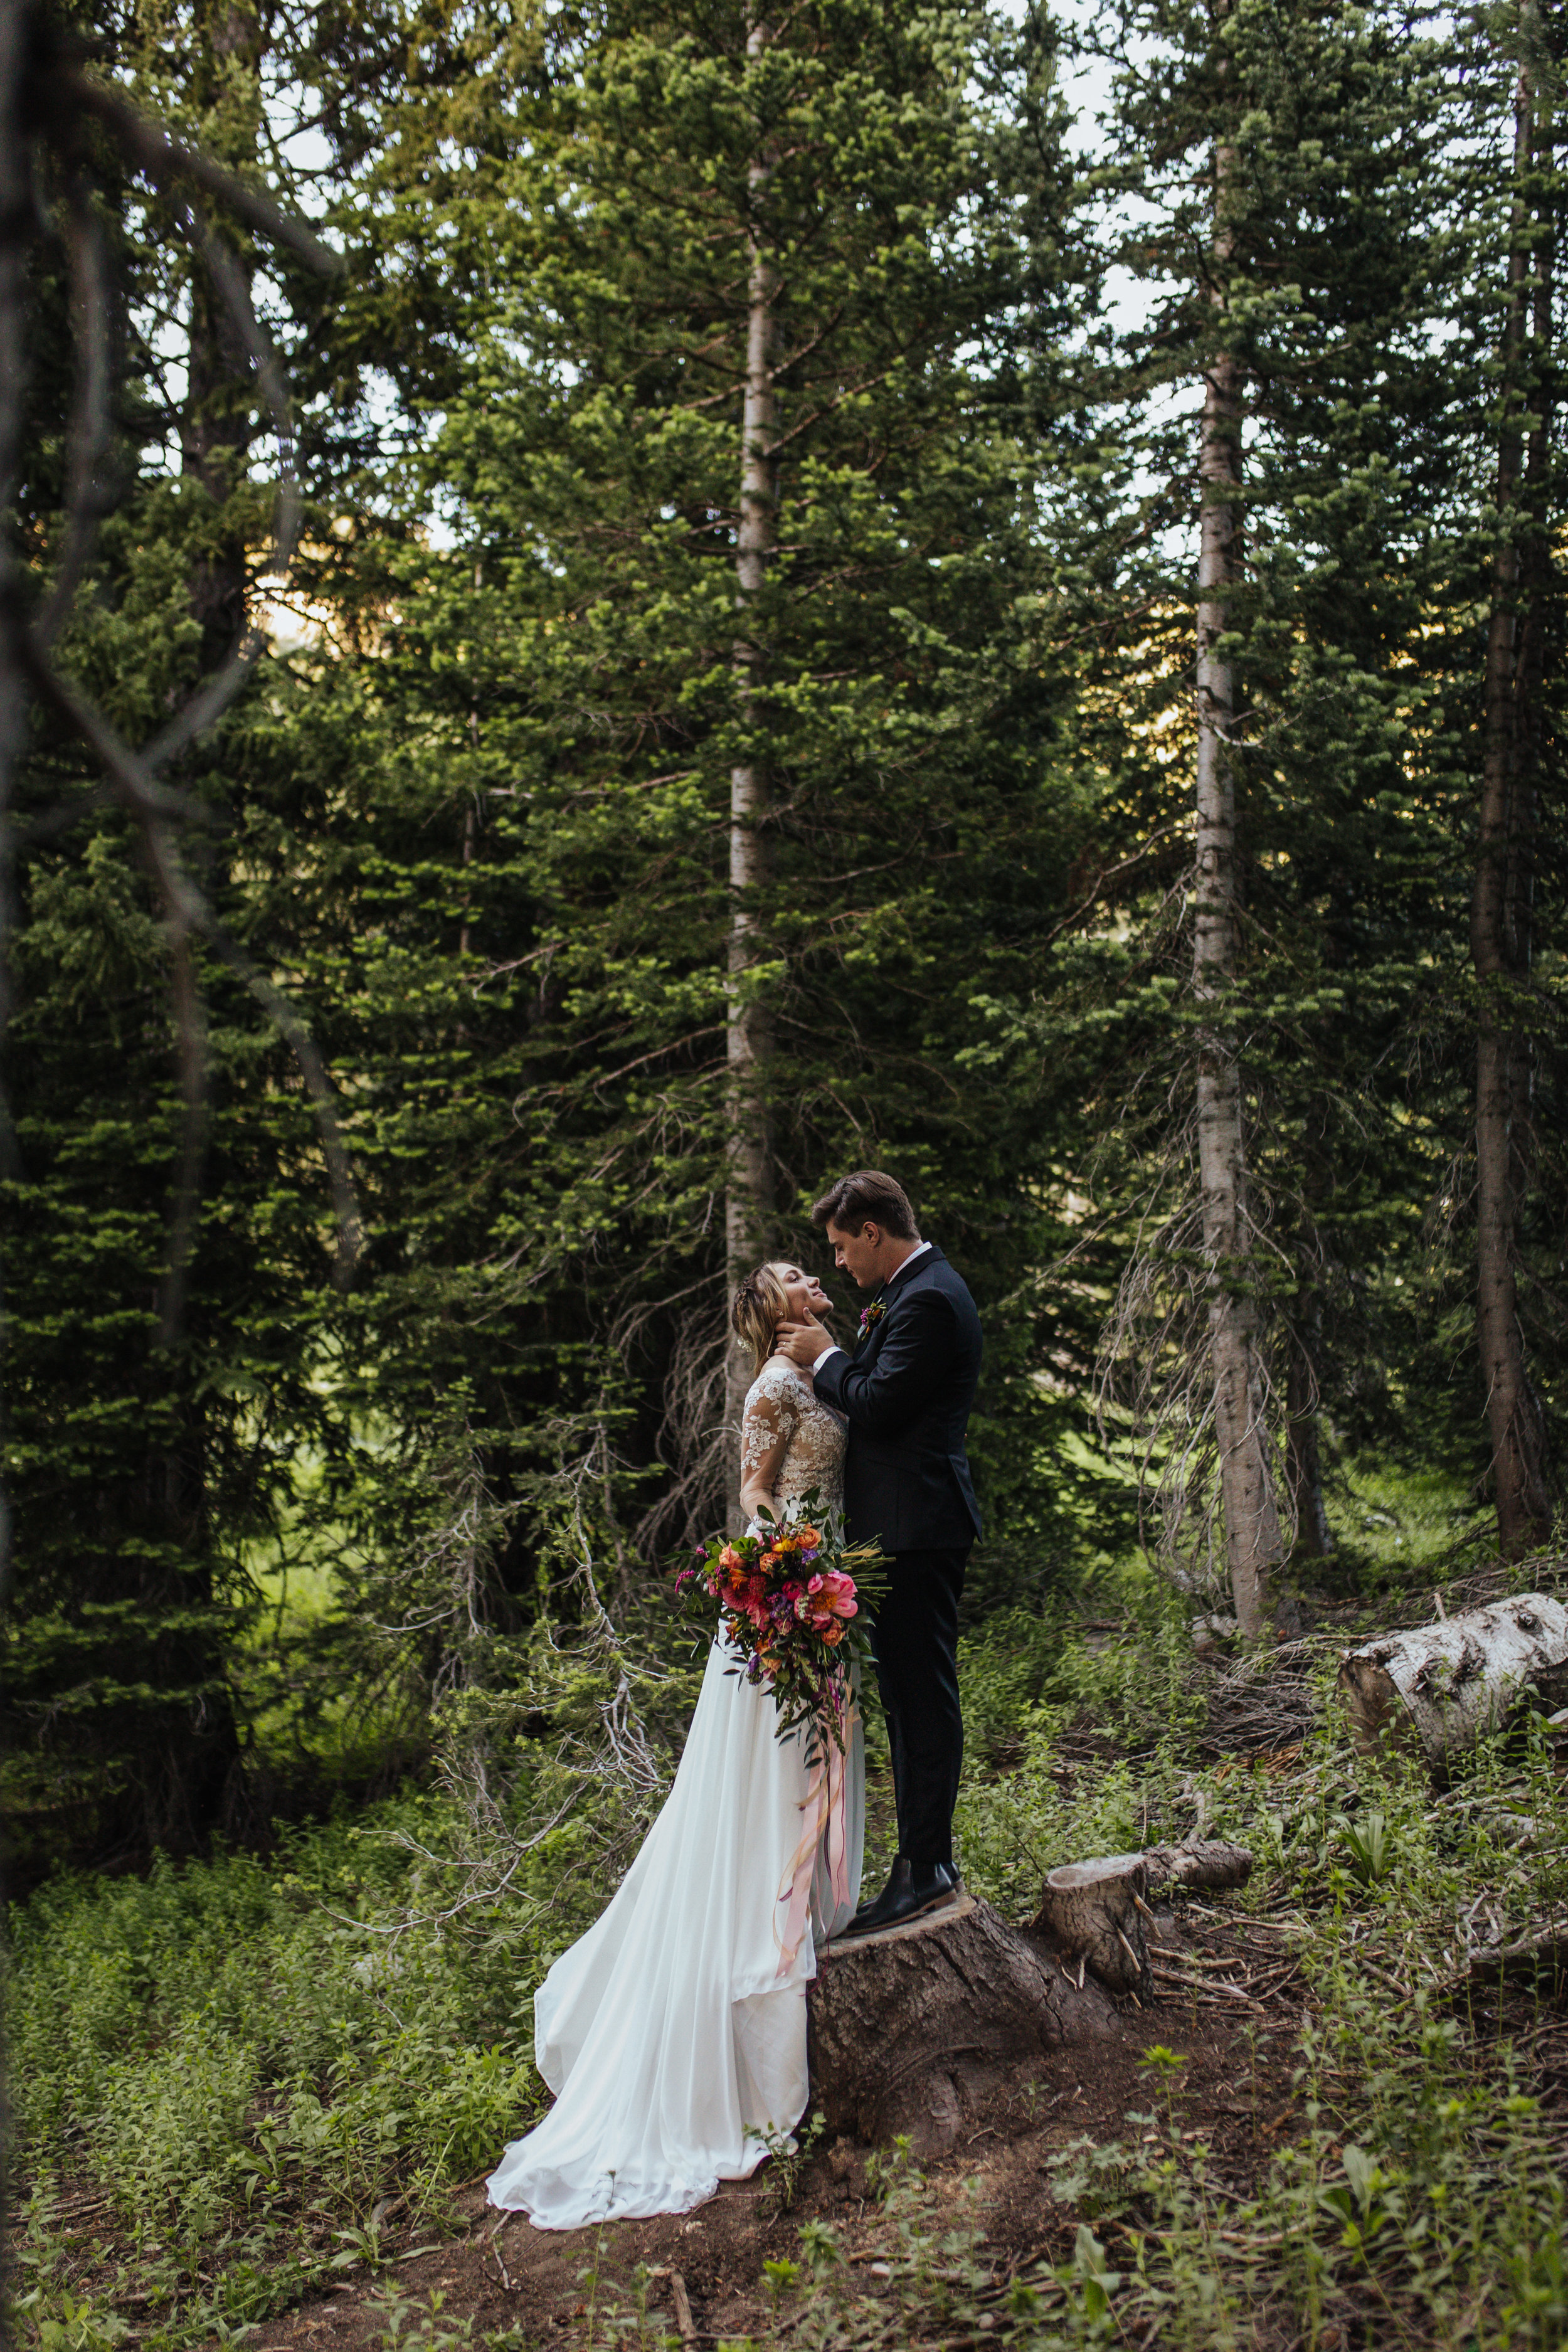 Utah Wedding Pricing - Ultimate Wedding Package:$2,100Includes: engagements, bridals, full wedding day with a second shooter and up to 12 hours.Total photo count 500+(Boudoir can be added for an additional $200, Anniversary can be added as well for an additional $200).Standard Wedding Package:$1,800Includes: engagements, bridals, and 8 hours of wedding day coverage.Total photo count: 350+Bridal/Formal Shoot:$450Bride & Groom, or Bride only. 2-2 1/2 Hours. 50-100+ edited photos. Location of choice.Wedding Day Only:$1,350 - 8 hours$1,550 - 12 hoursIncludes: 8/12 hours of wedding day coverage, 150+ edited photos, and same day formals on location.Wedding Day & Bridal Shoot:$1,600Wedding day: 8 hours of wedding day coverage, 150+ edited photos, same day formals on location.Bridals/Formals: Bride & Groom, or Bride only. 2-2 1/2 Hours. 150+ edited photos. Location of choice.*Additional hours can be added at $100 per hour